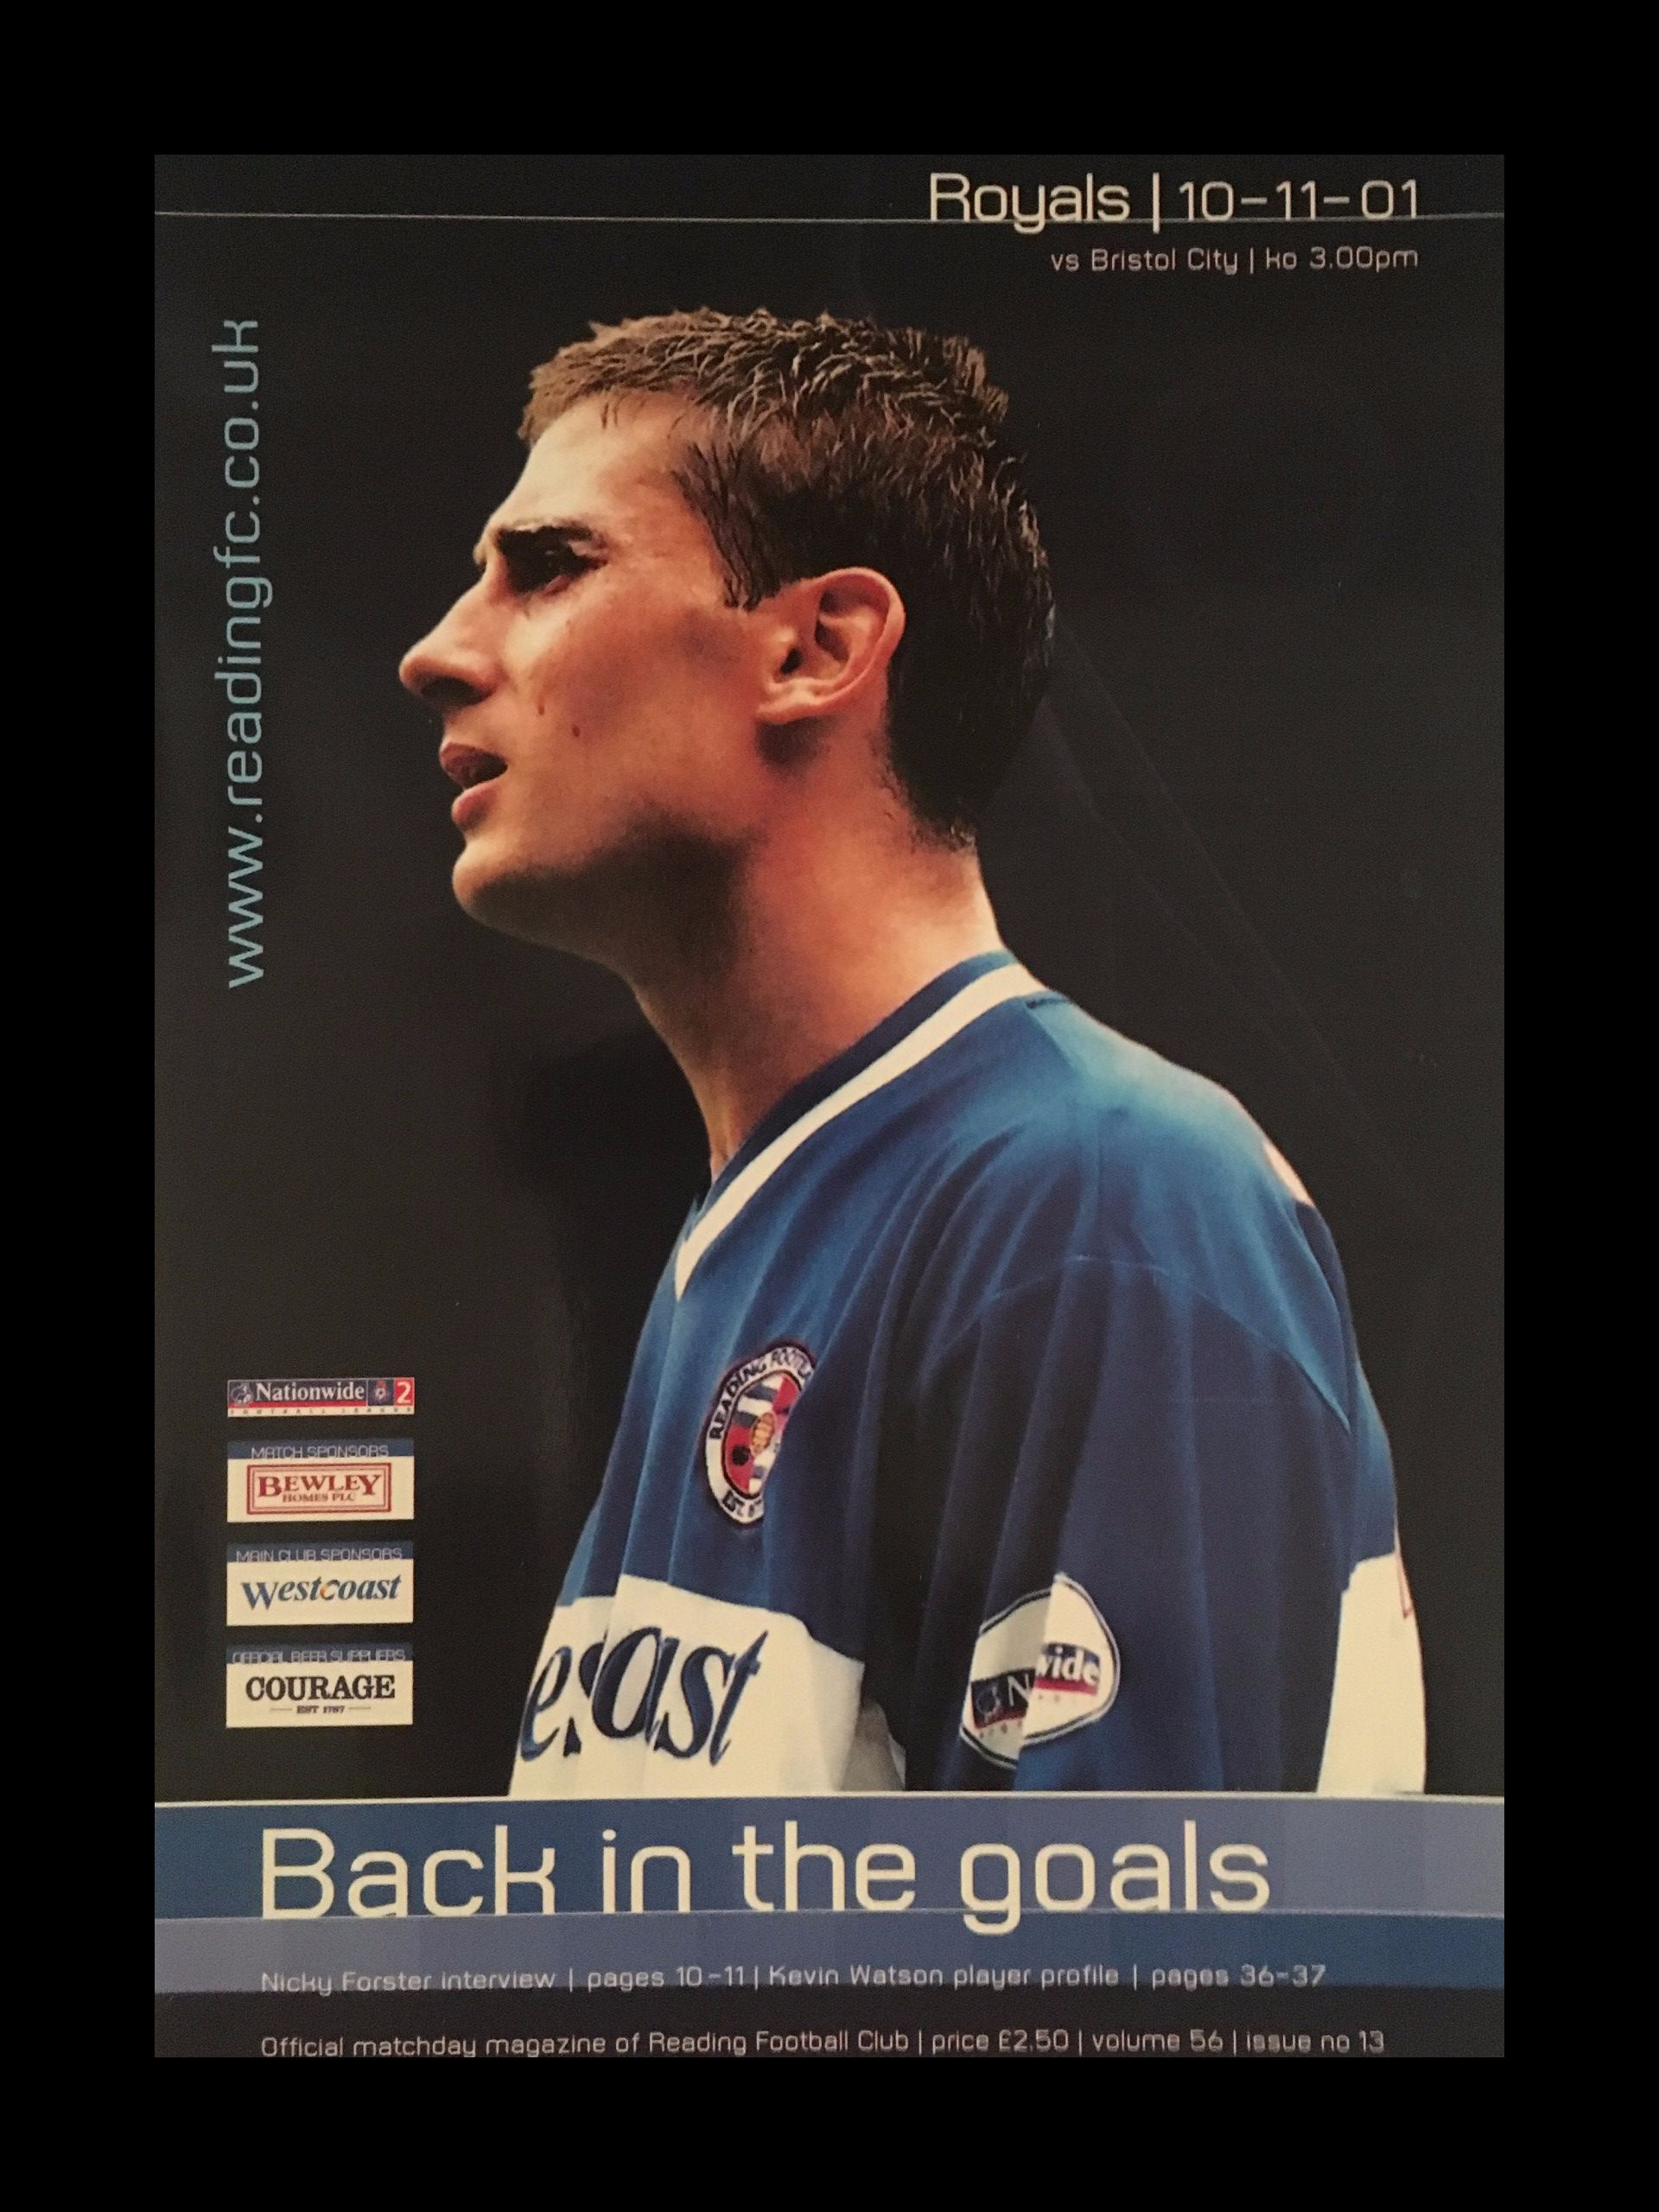 Reading v Bristol City 10-11-2001 Programme